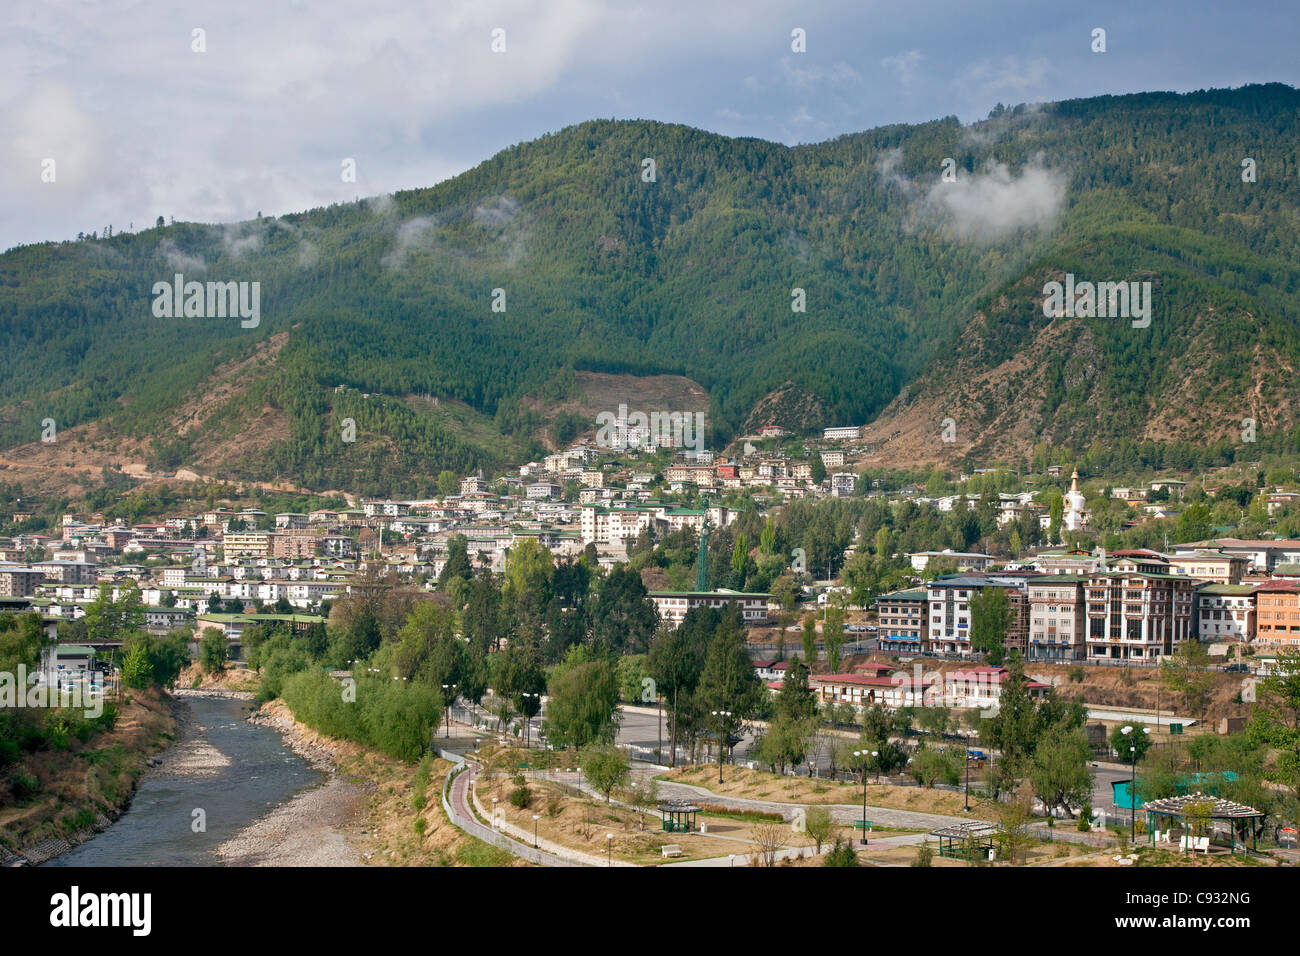 Lying at an altitude of over 2,200 metres and surrounded by mountains, Thimphu is the capital city of Bhutan. - Stock Image